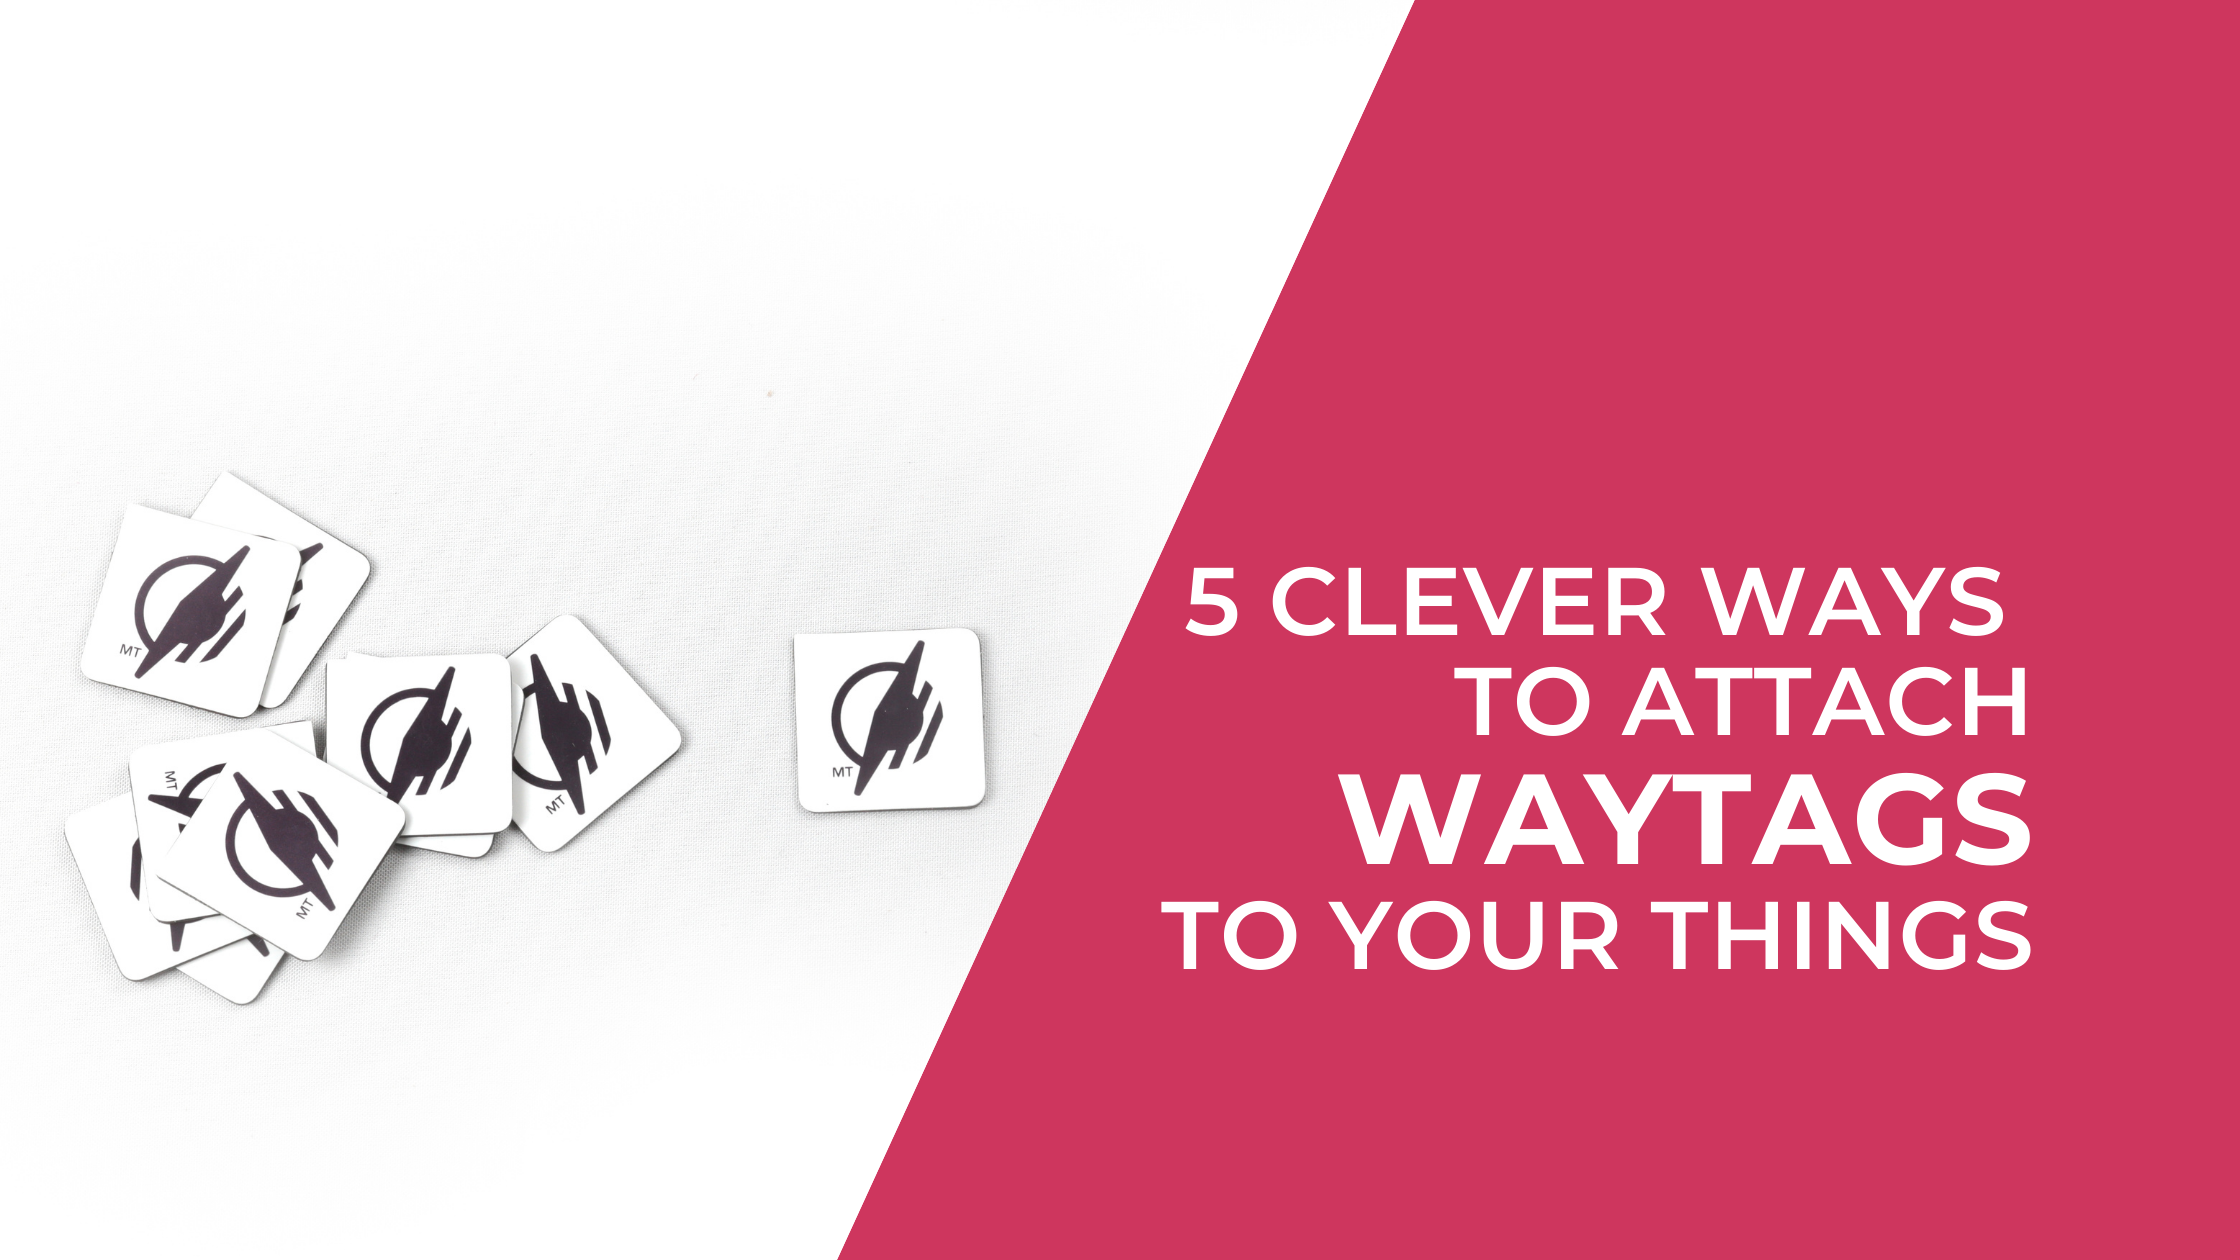 Square WayTags on a white background. Text says 5 Clever Ways to Attach WayTags to your Things.